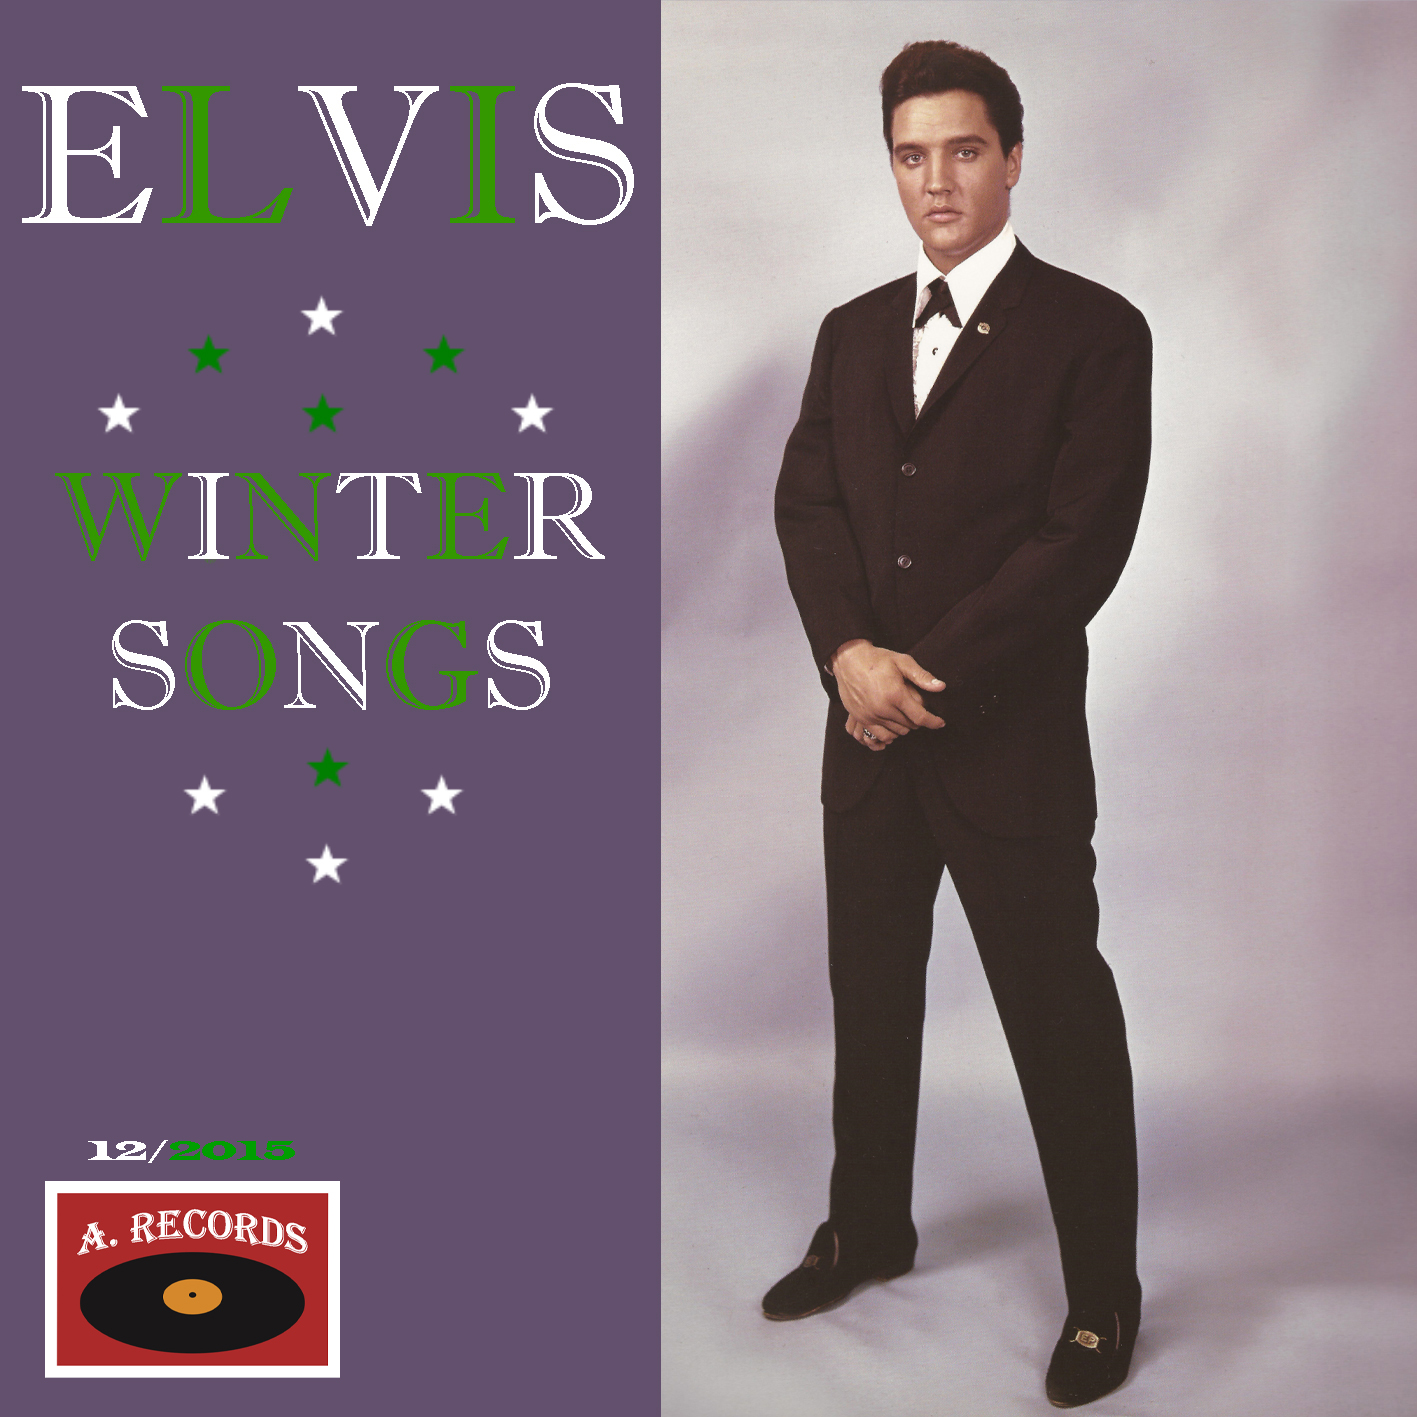 Elvis - Winter Songs (December 2015)